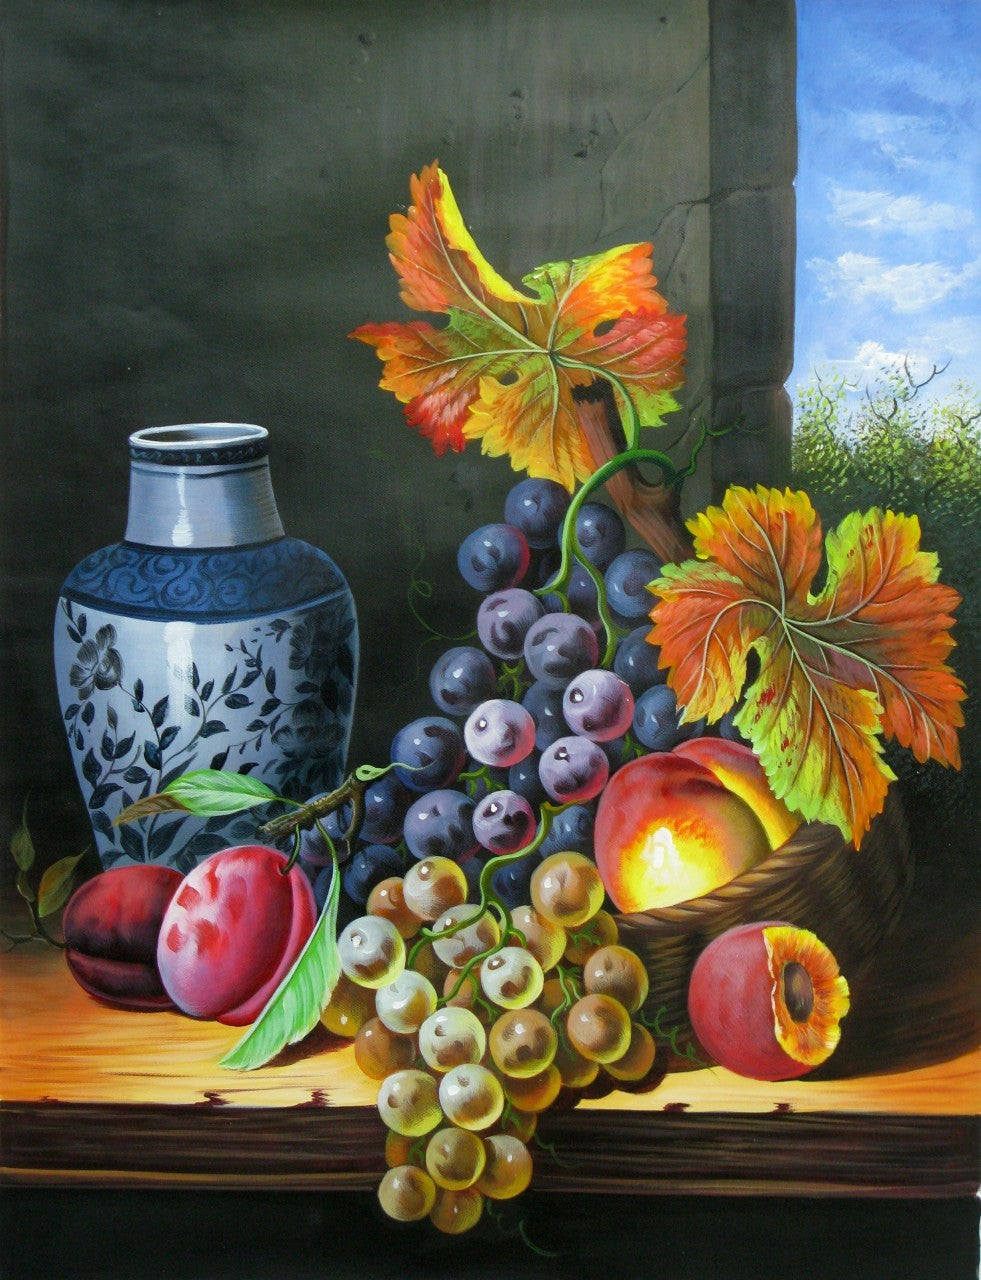 Awesome Grapes and Peach Diamond Painting Kit - MEIISS DIAMOND PAINTING